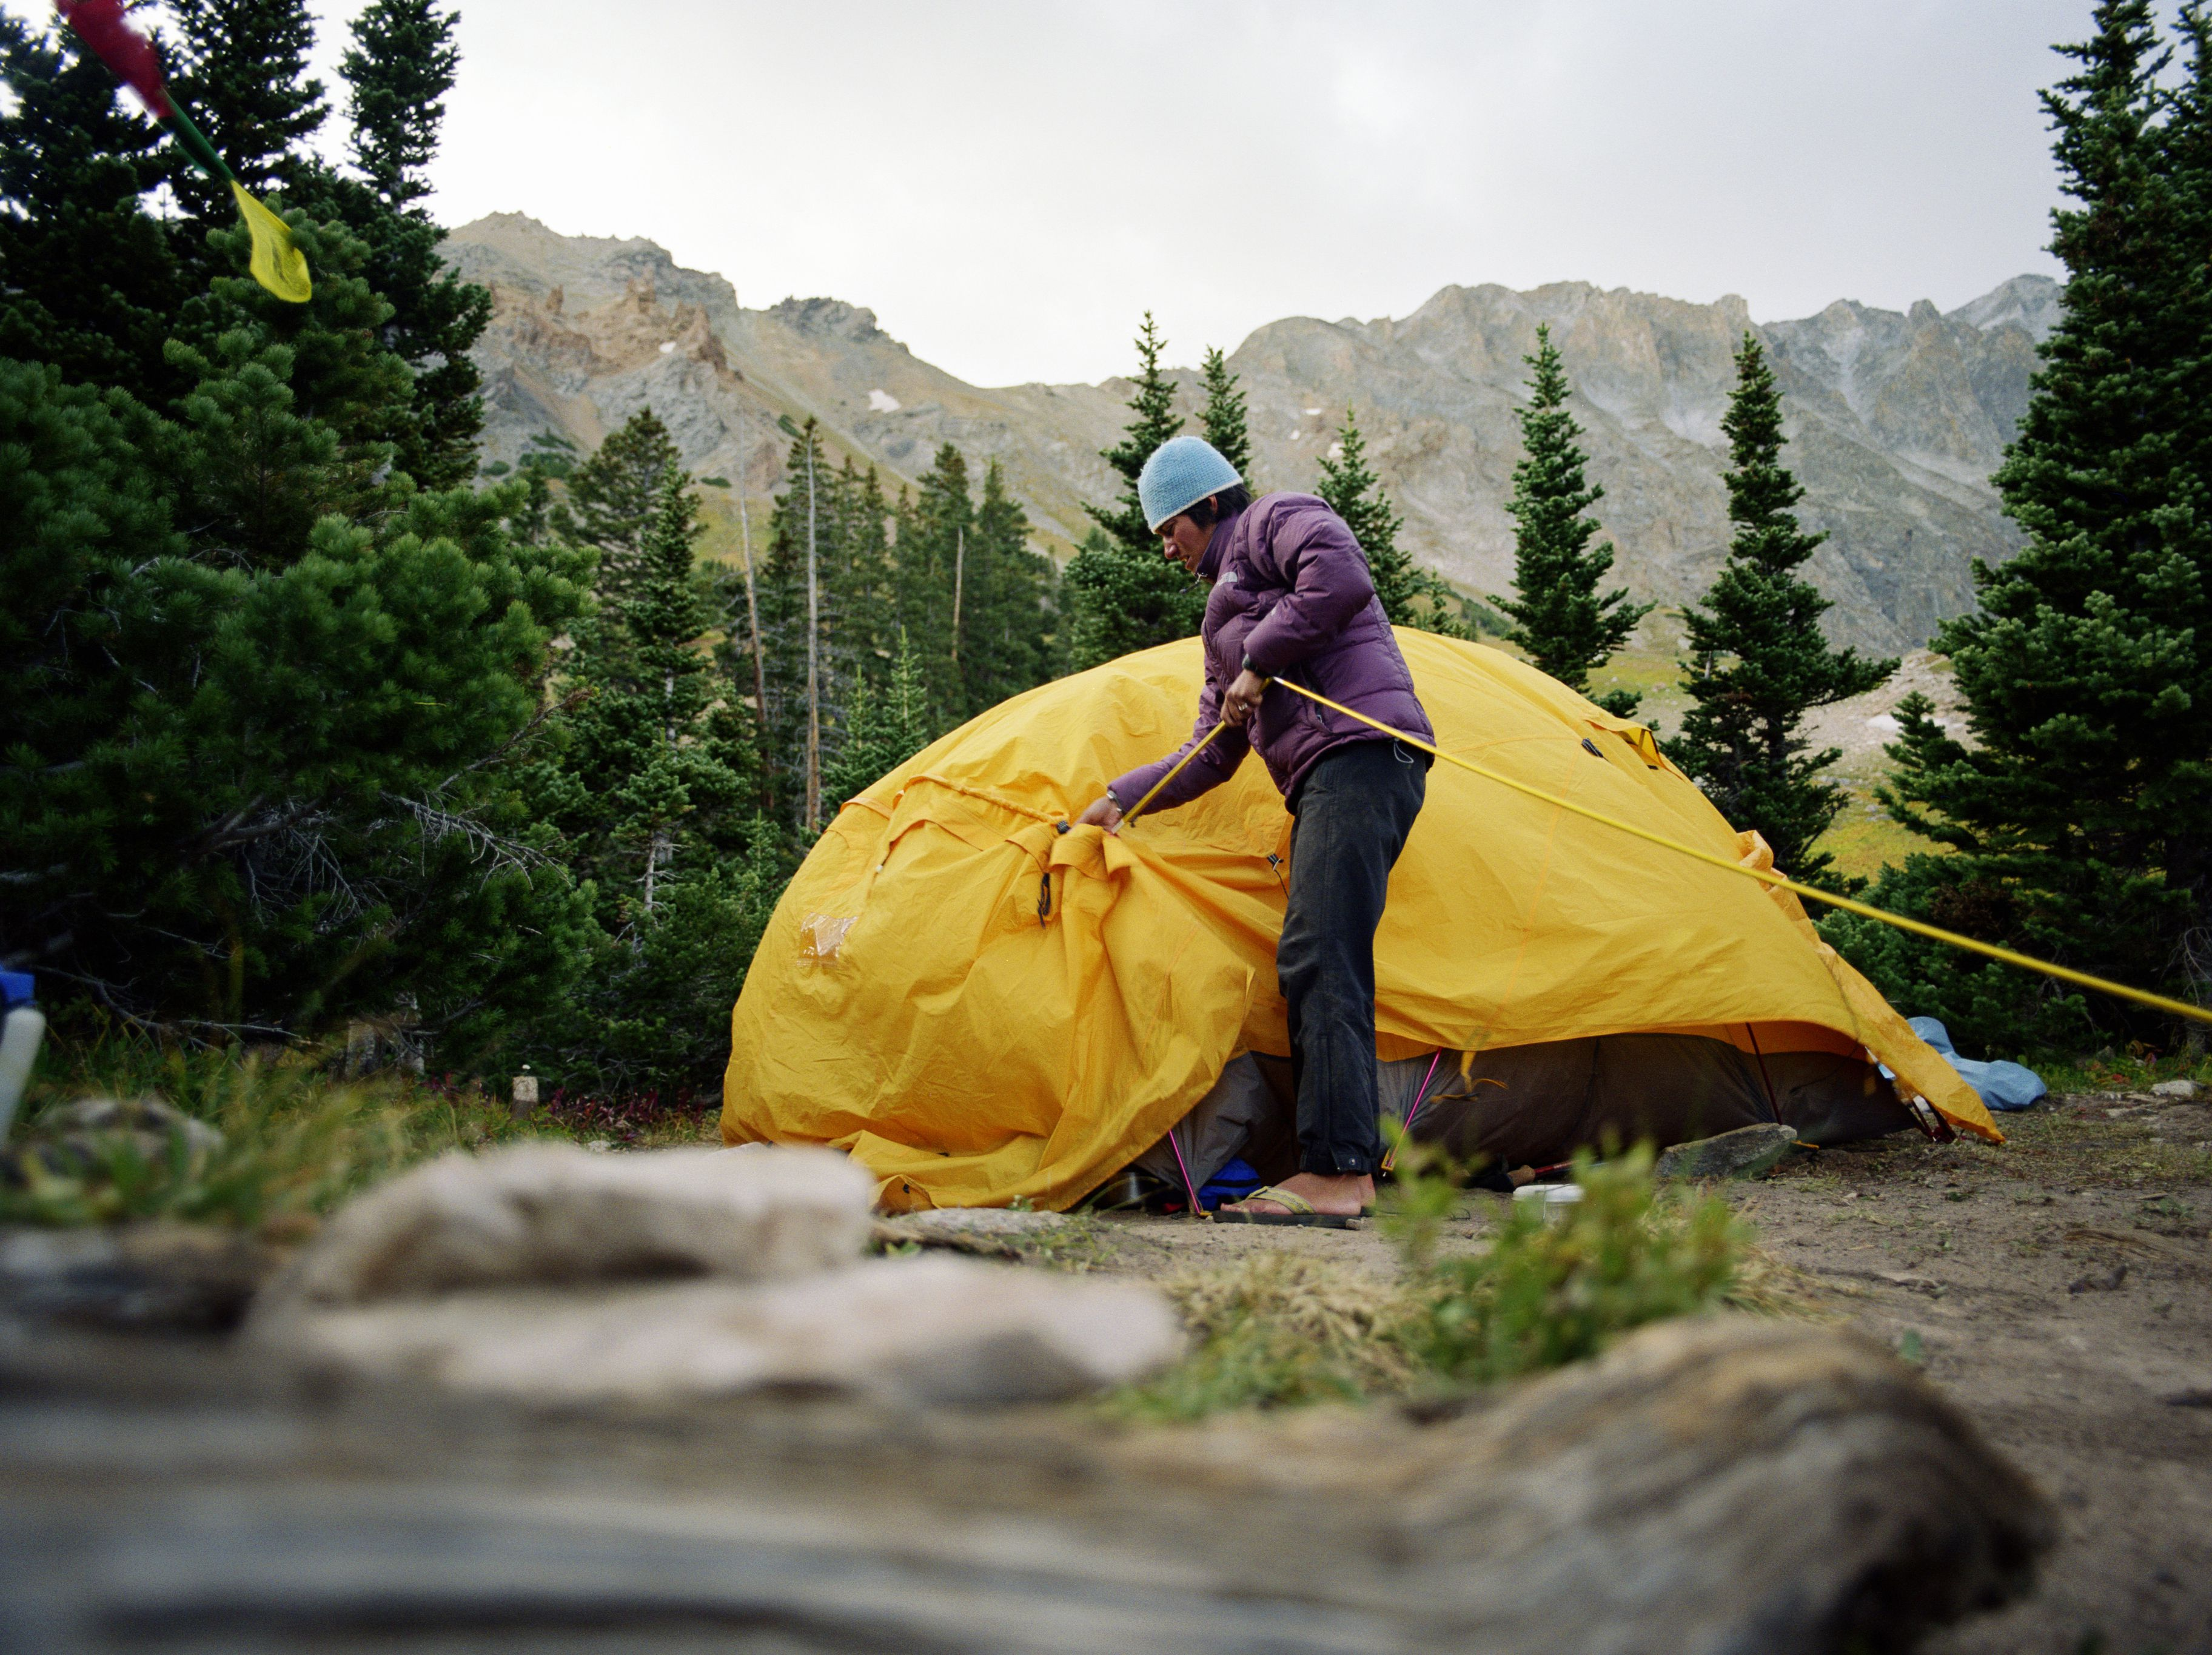 Woman setting up camp, erecting tent